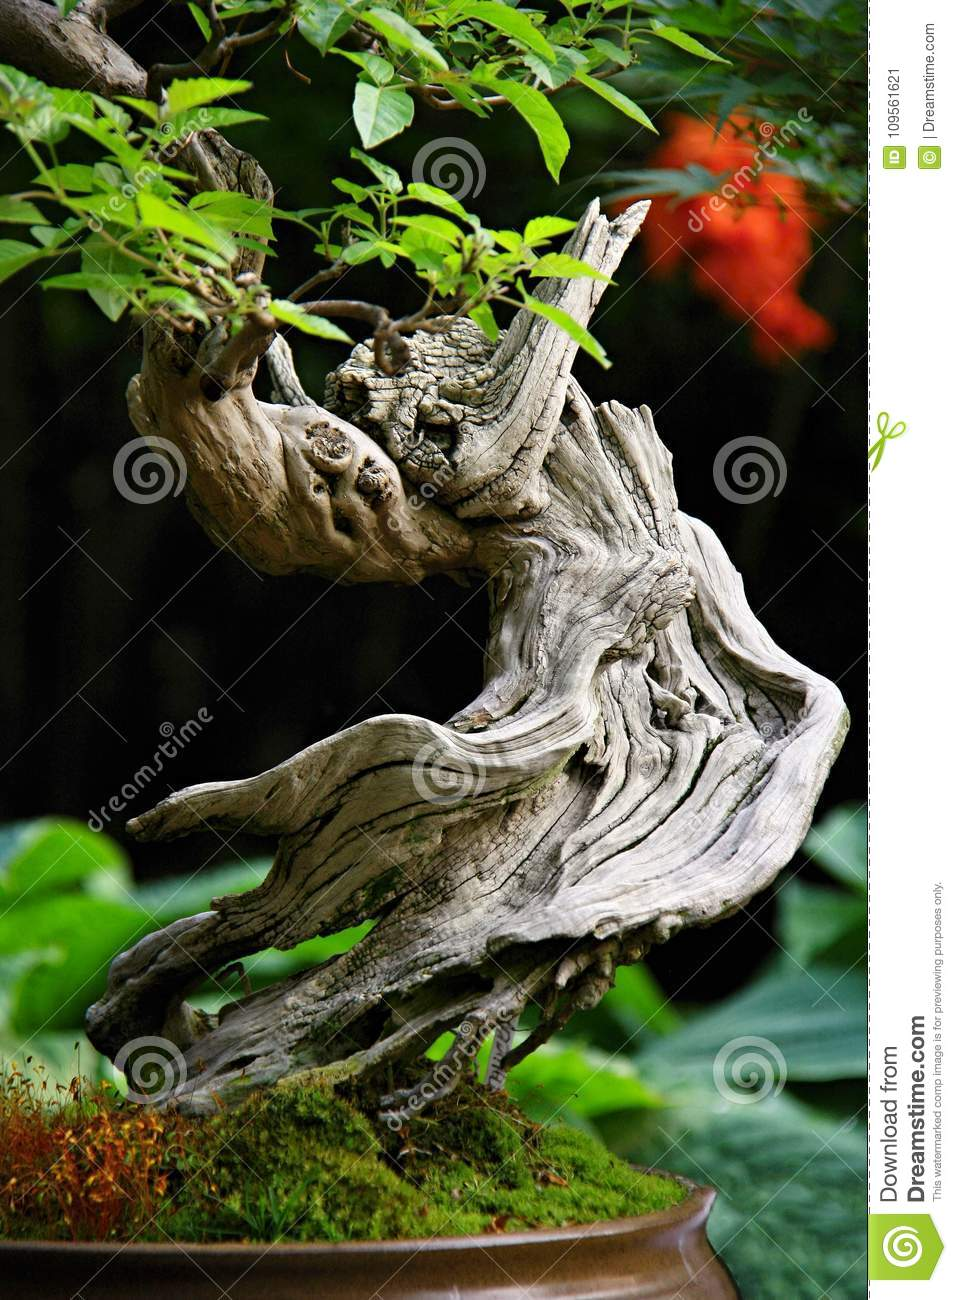 Bonsai With Twisted Trunk Stock Image Image Of Bonsai 109561621